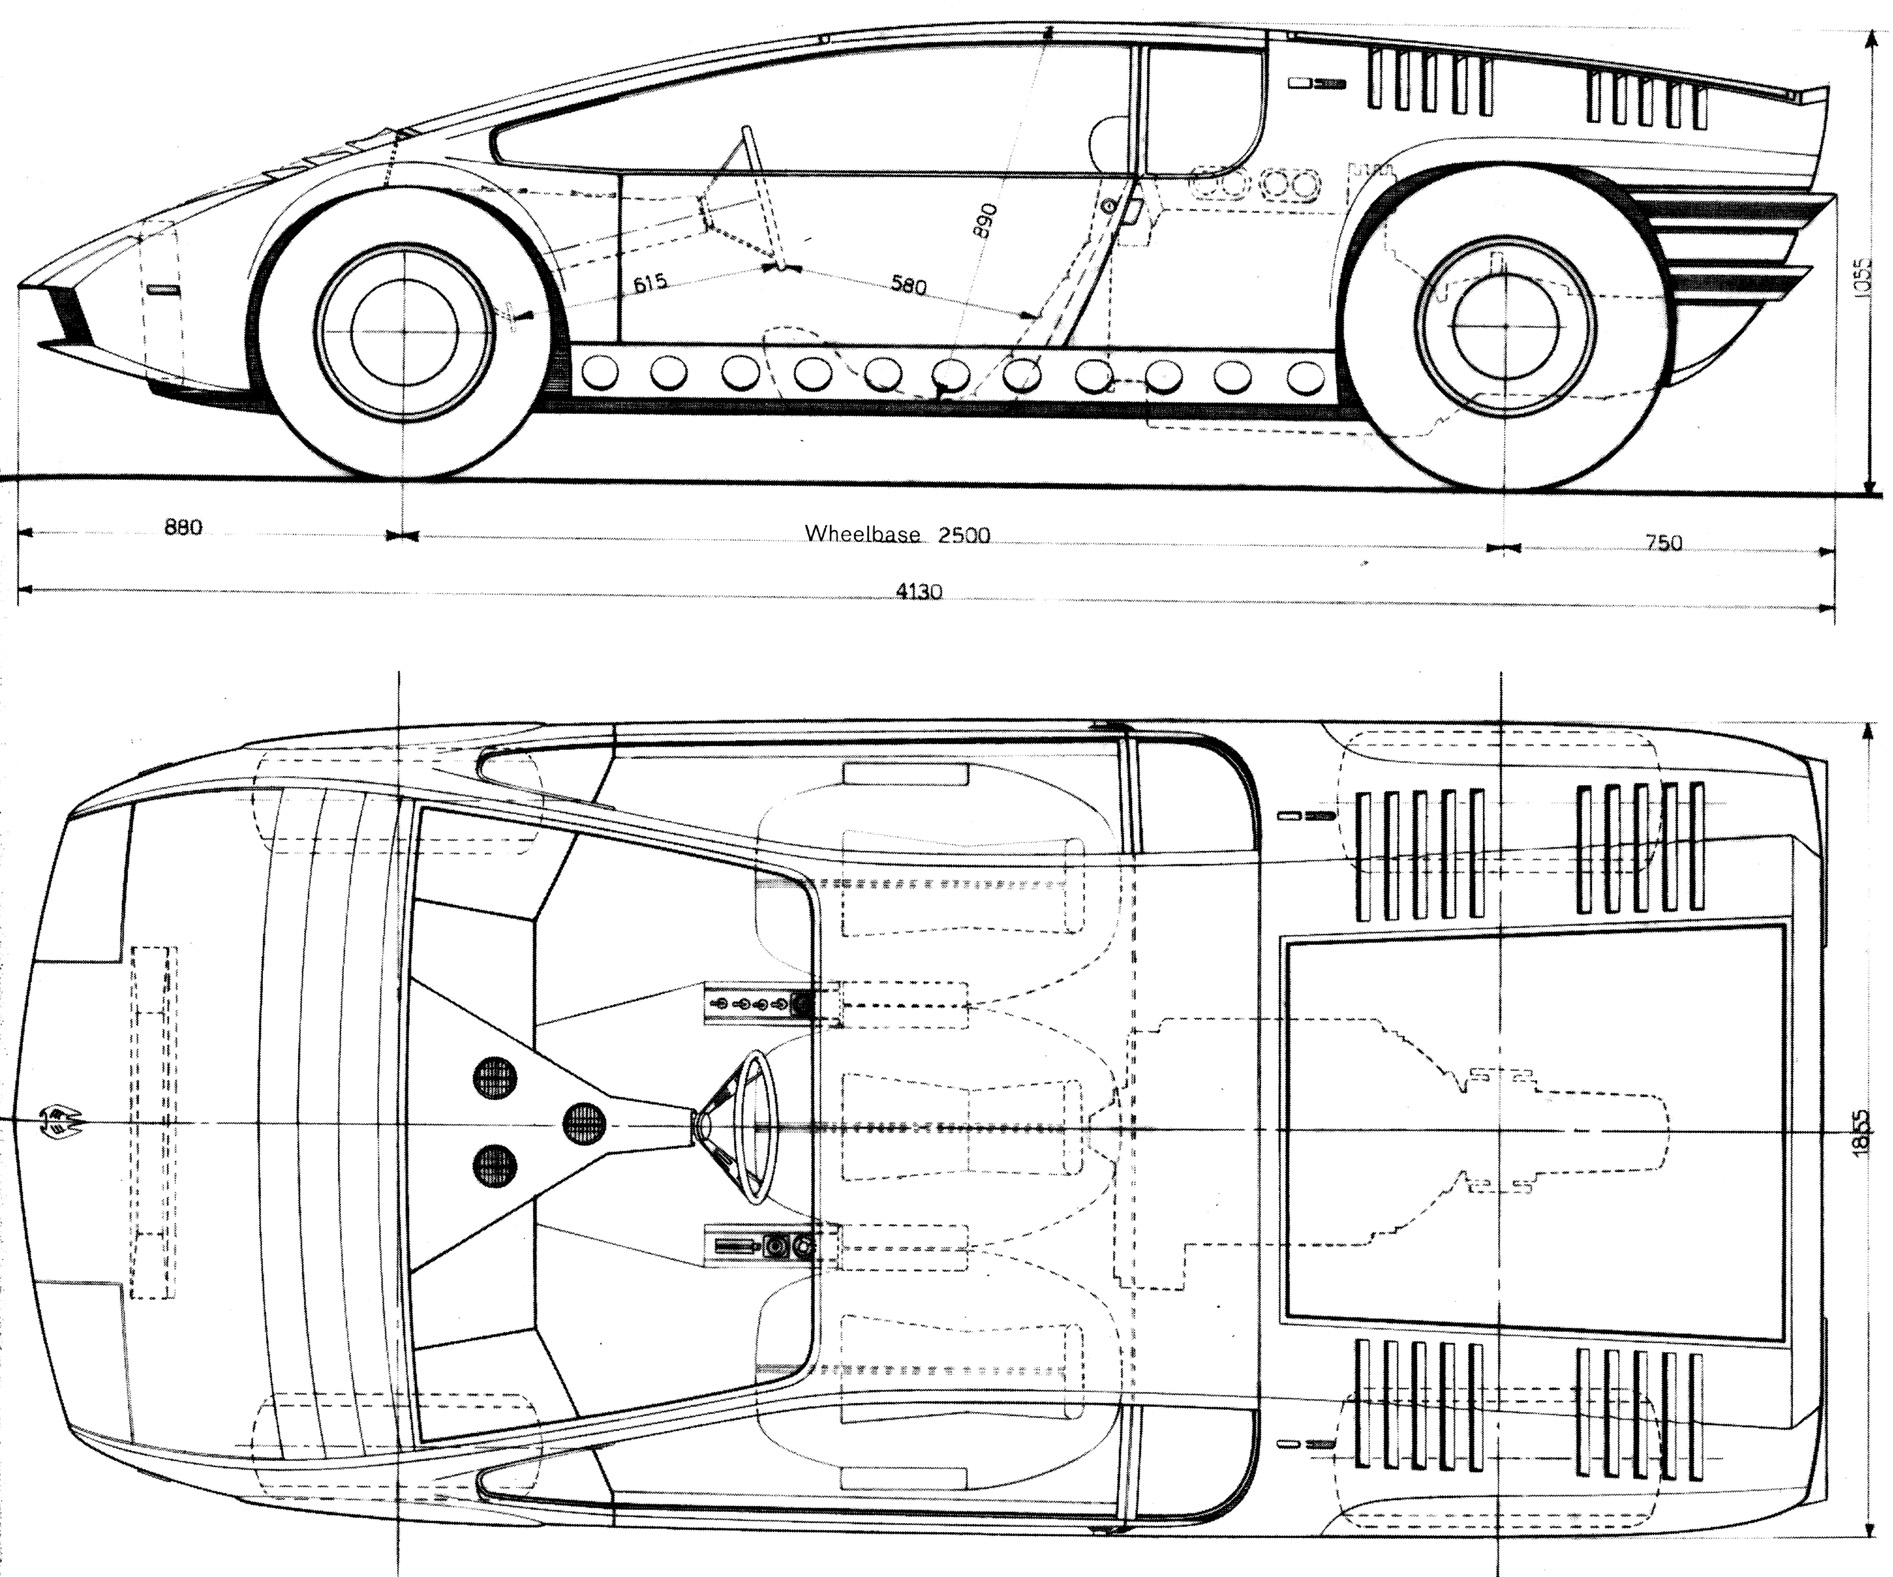 Ford 4r70w Transmission Diagram also Exploded View 4l60e Automatic Transmission furthermore Jaguar E Type 1961 also 1947 Chevy Windshield Wiper Motor furthermore 2001 Honda Accord Engine Diagram. on 2017 honda civic type r